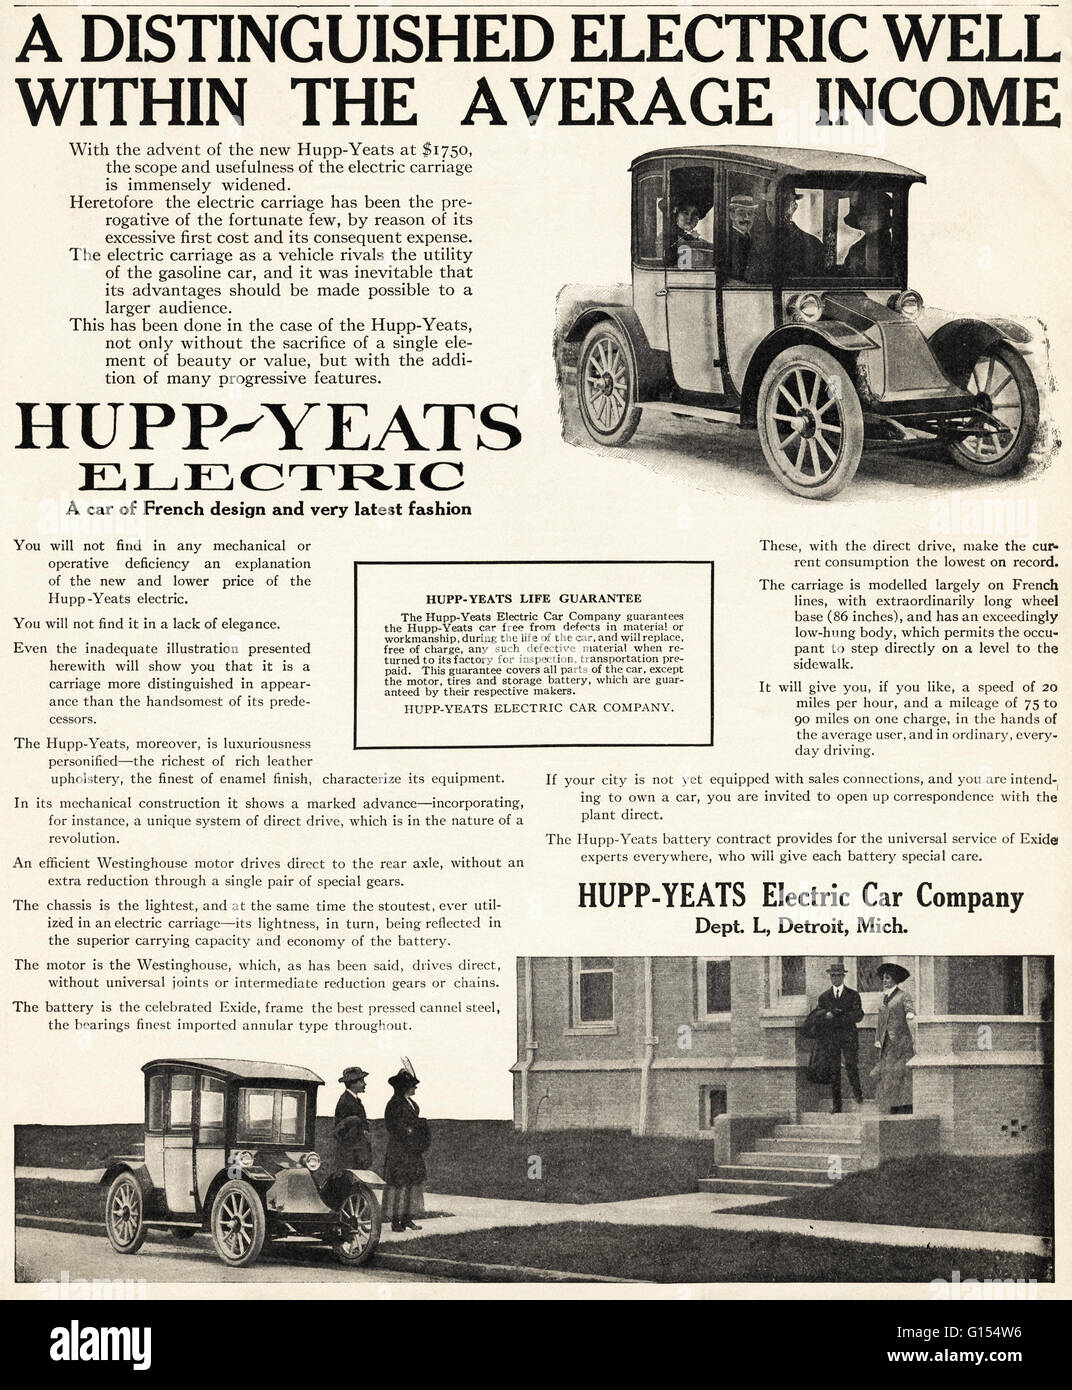 Original old vintage American magazine advert from the Edwardian era ...